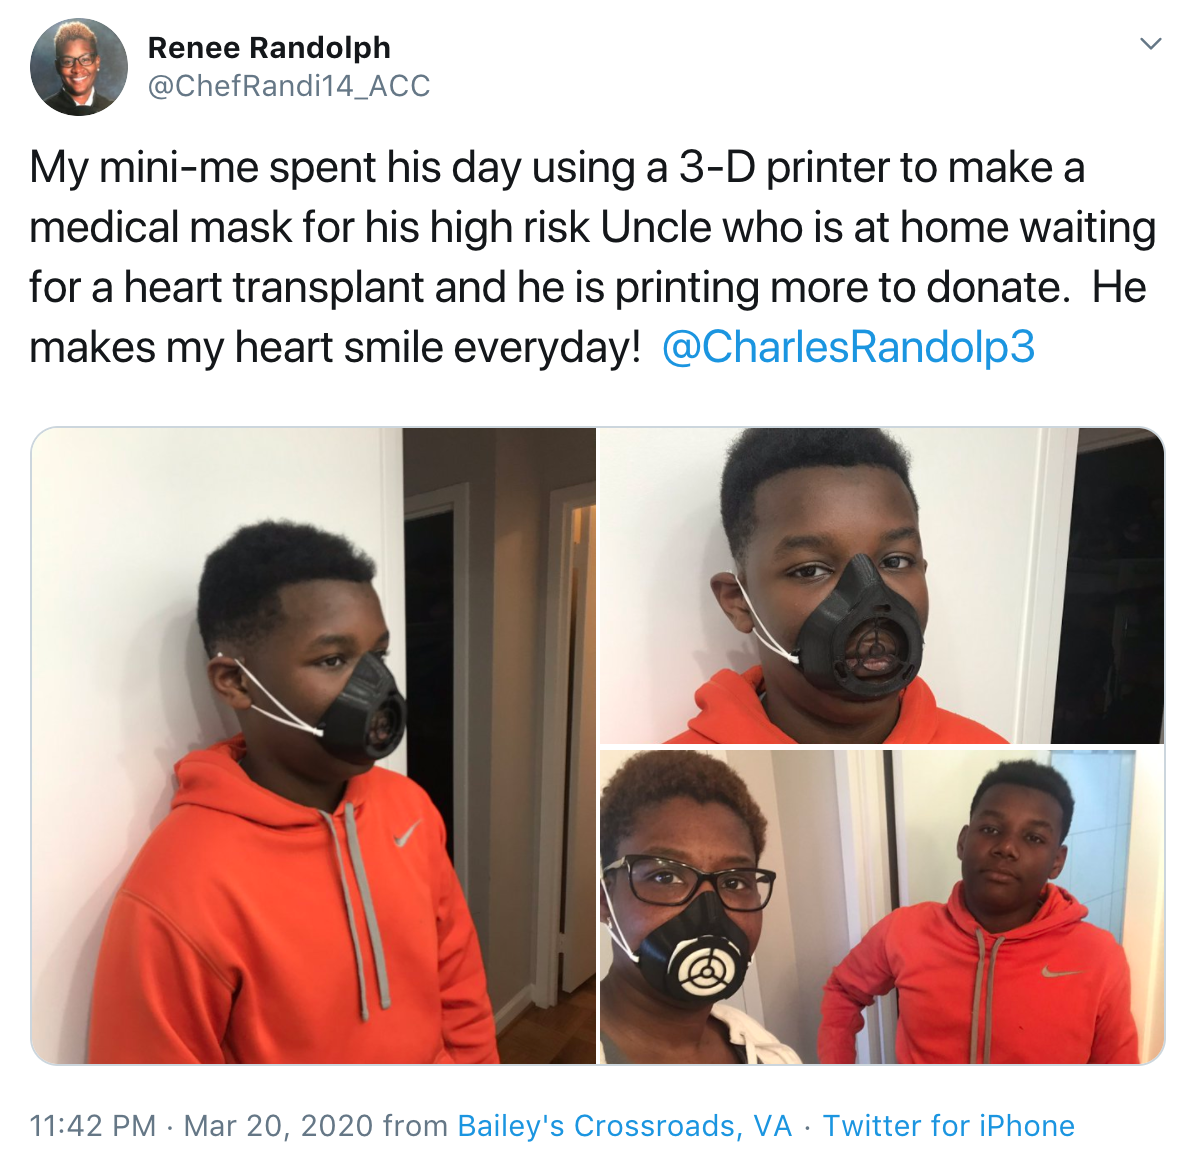 Boy makes masks for sick uncle using 3D printer